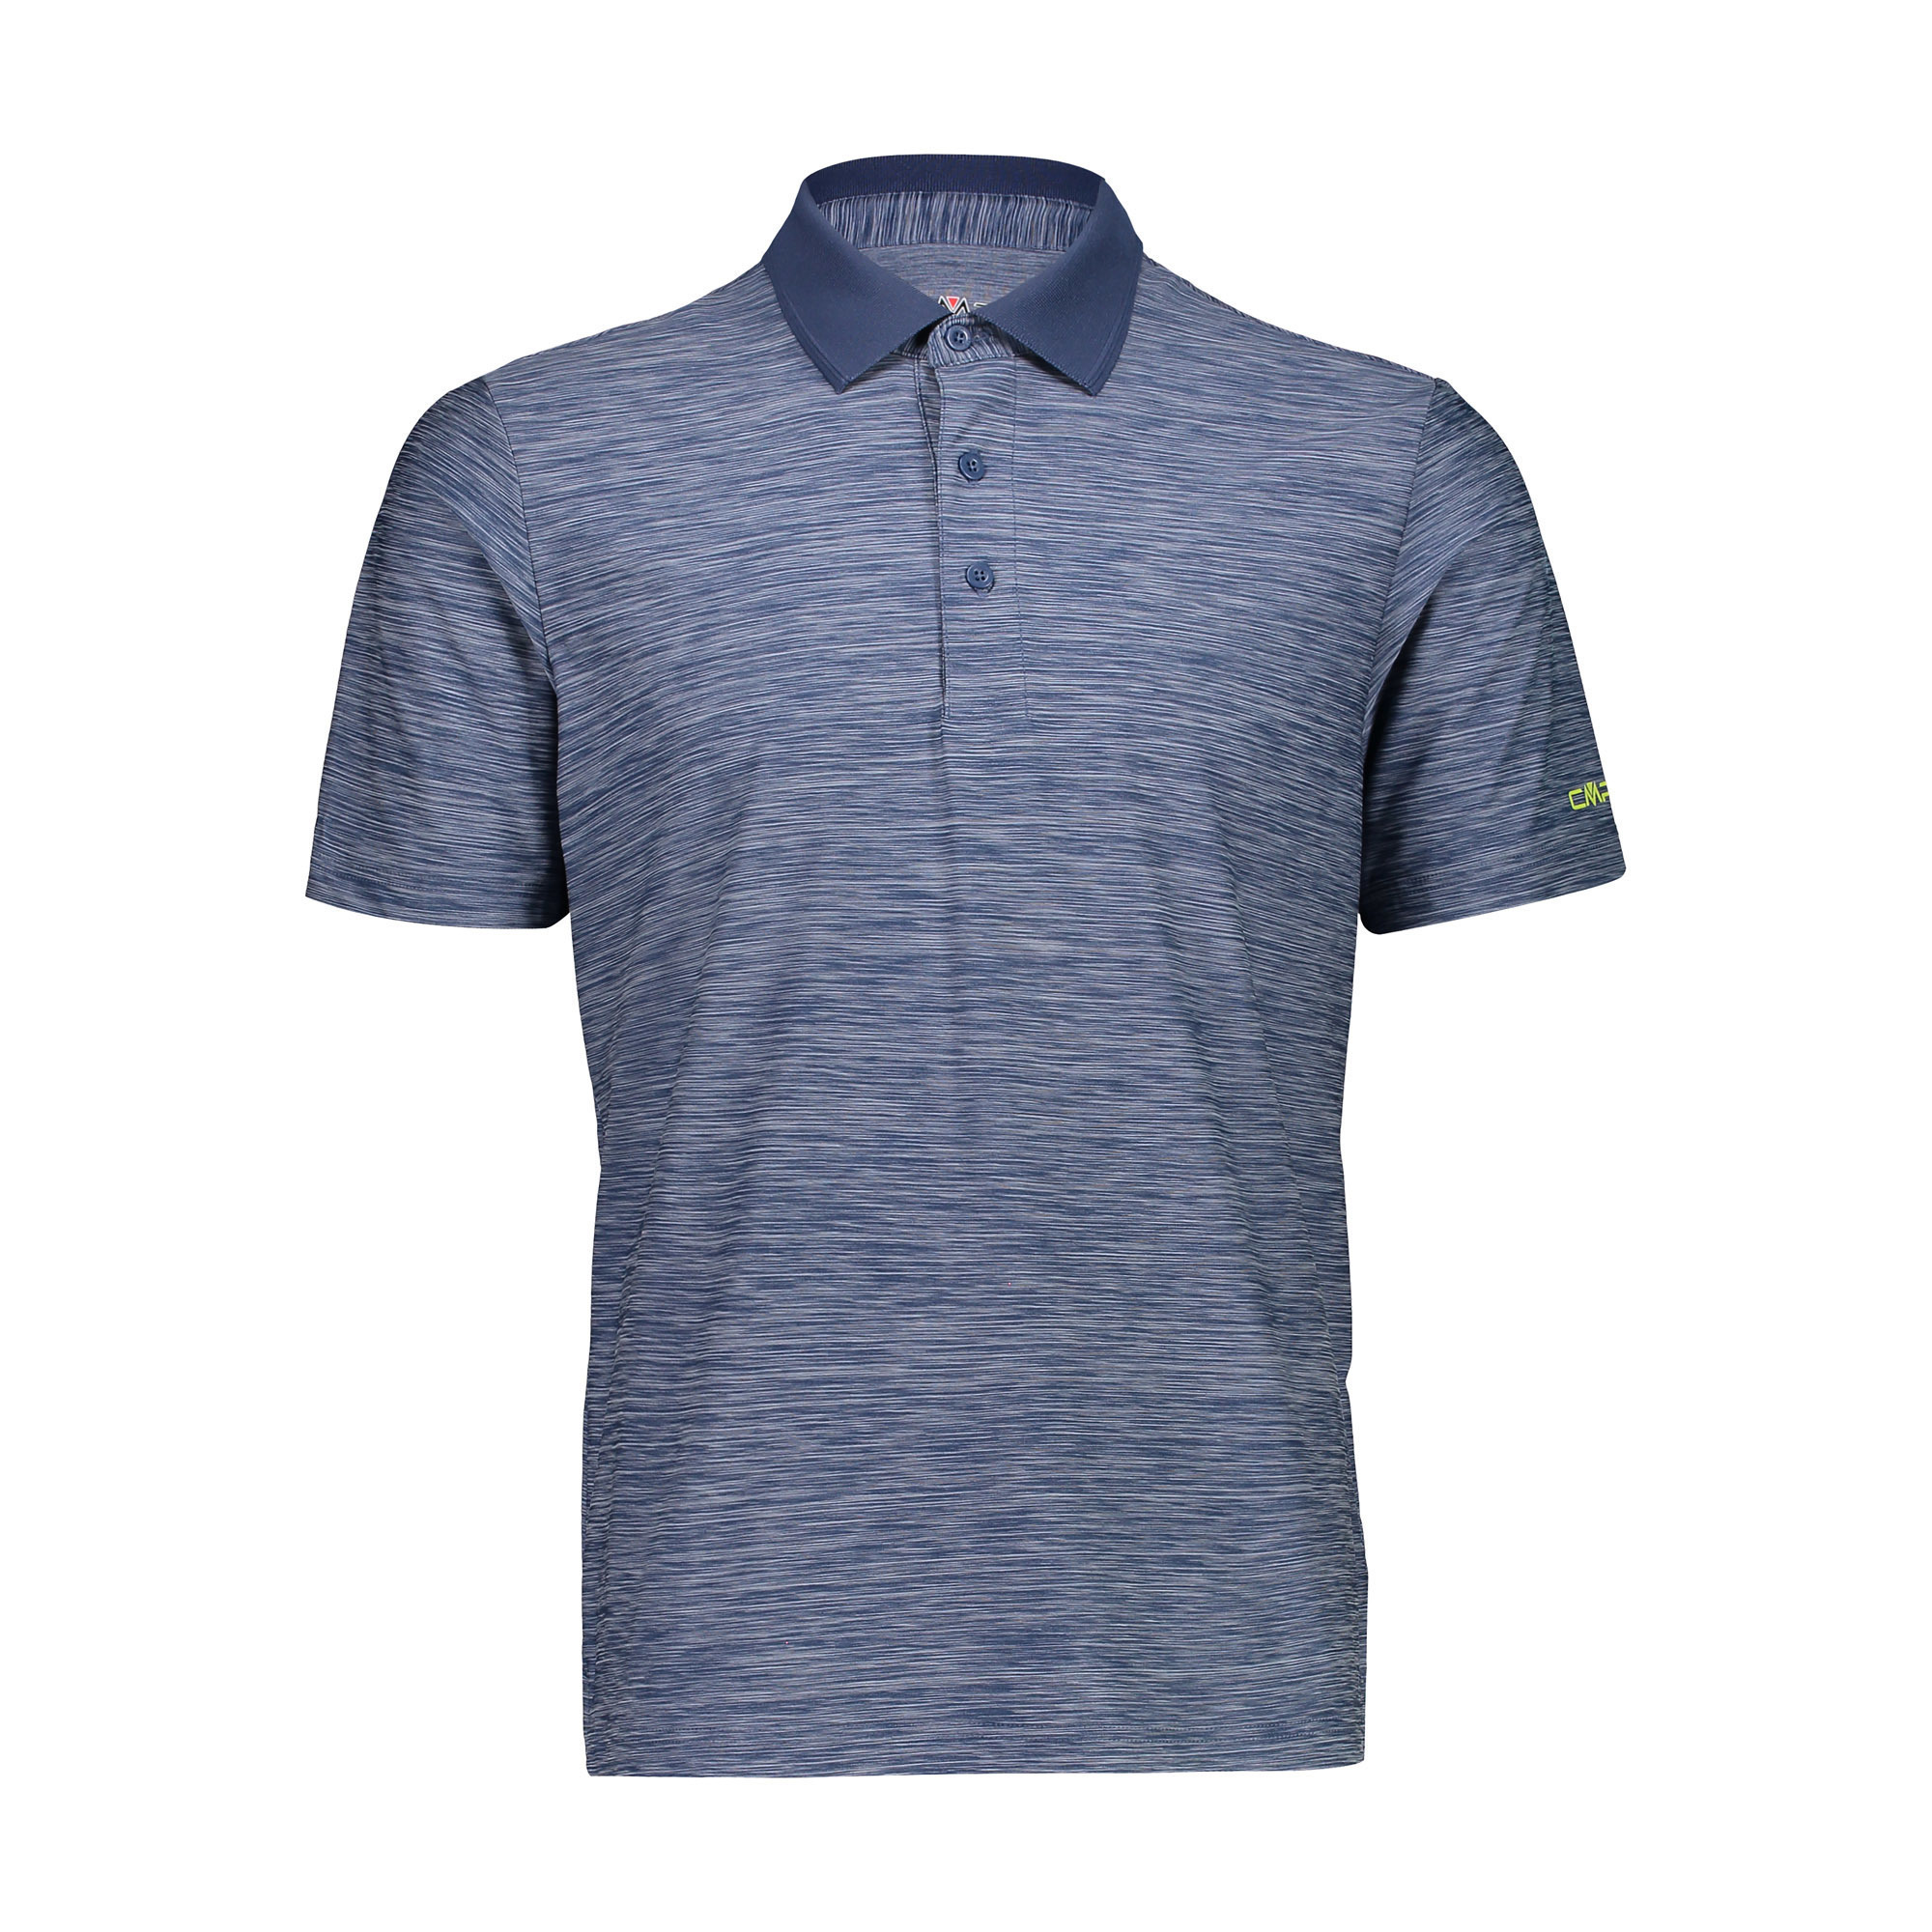 Dry Function Stretch Polo